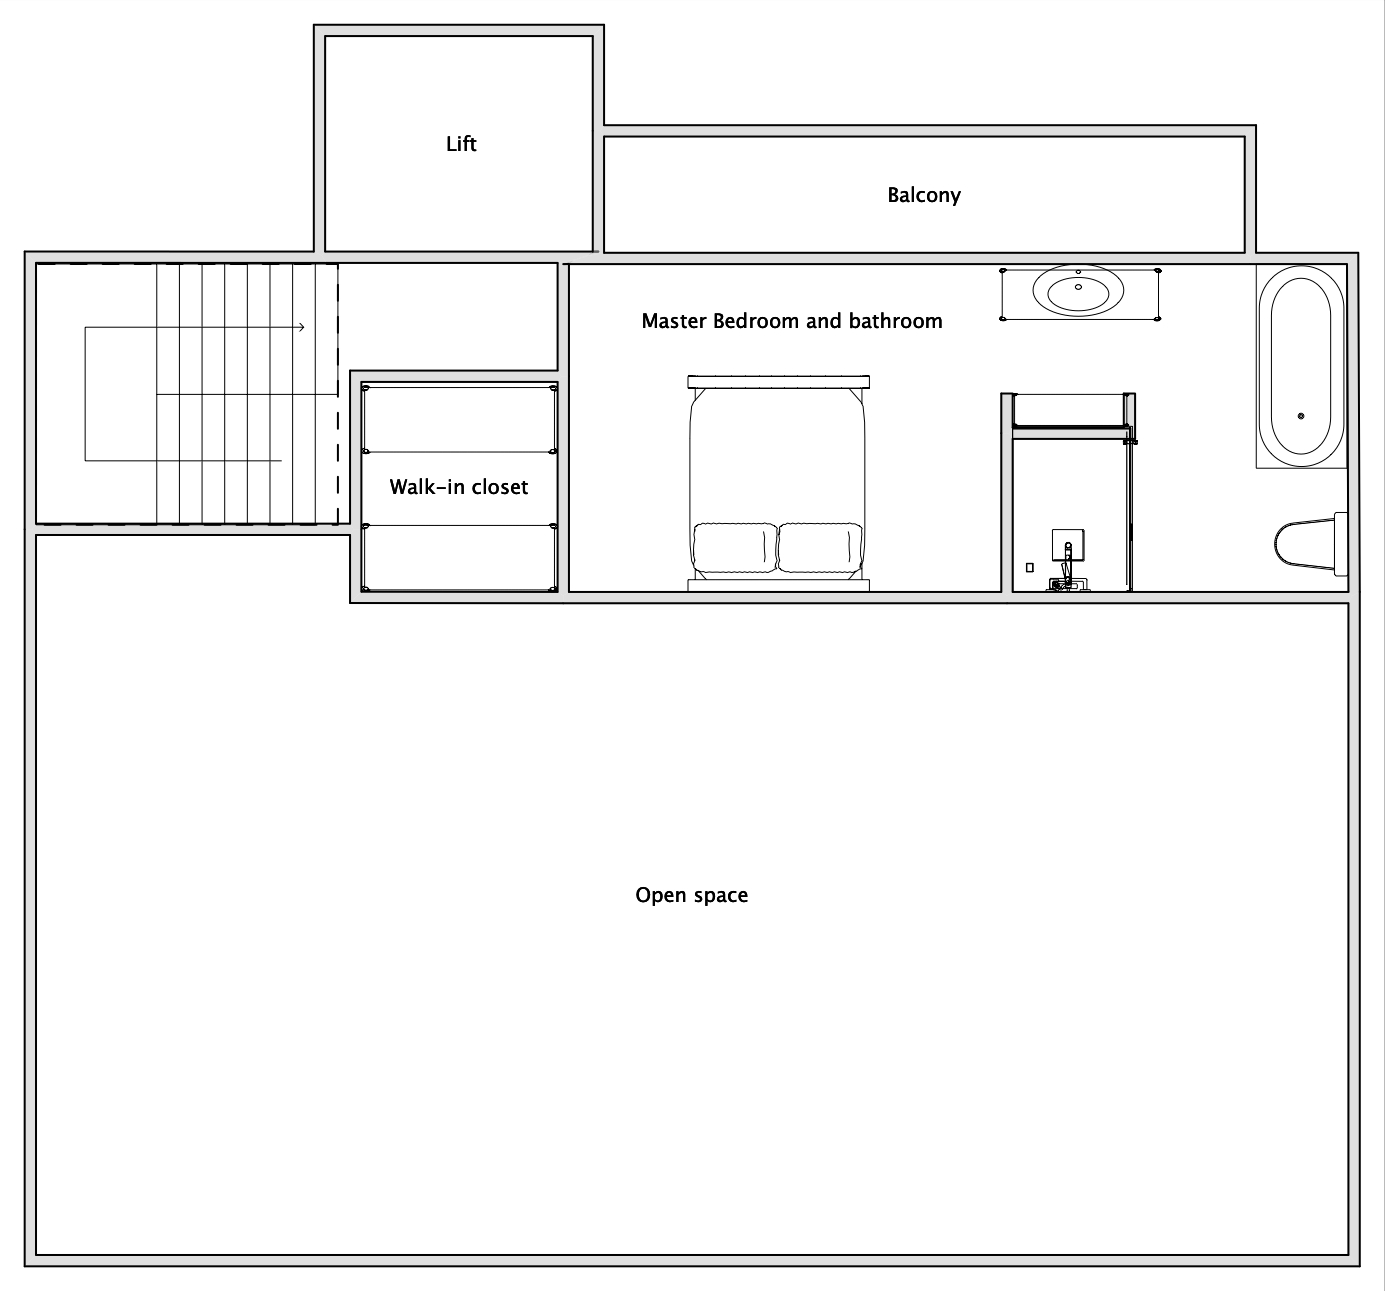 Chalet V (Self-Catered) Verbier Floor Plan 3